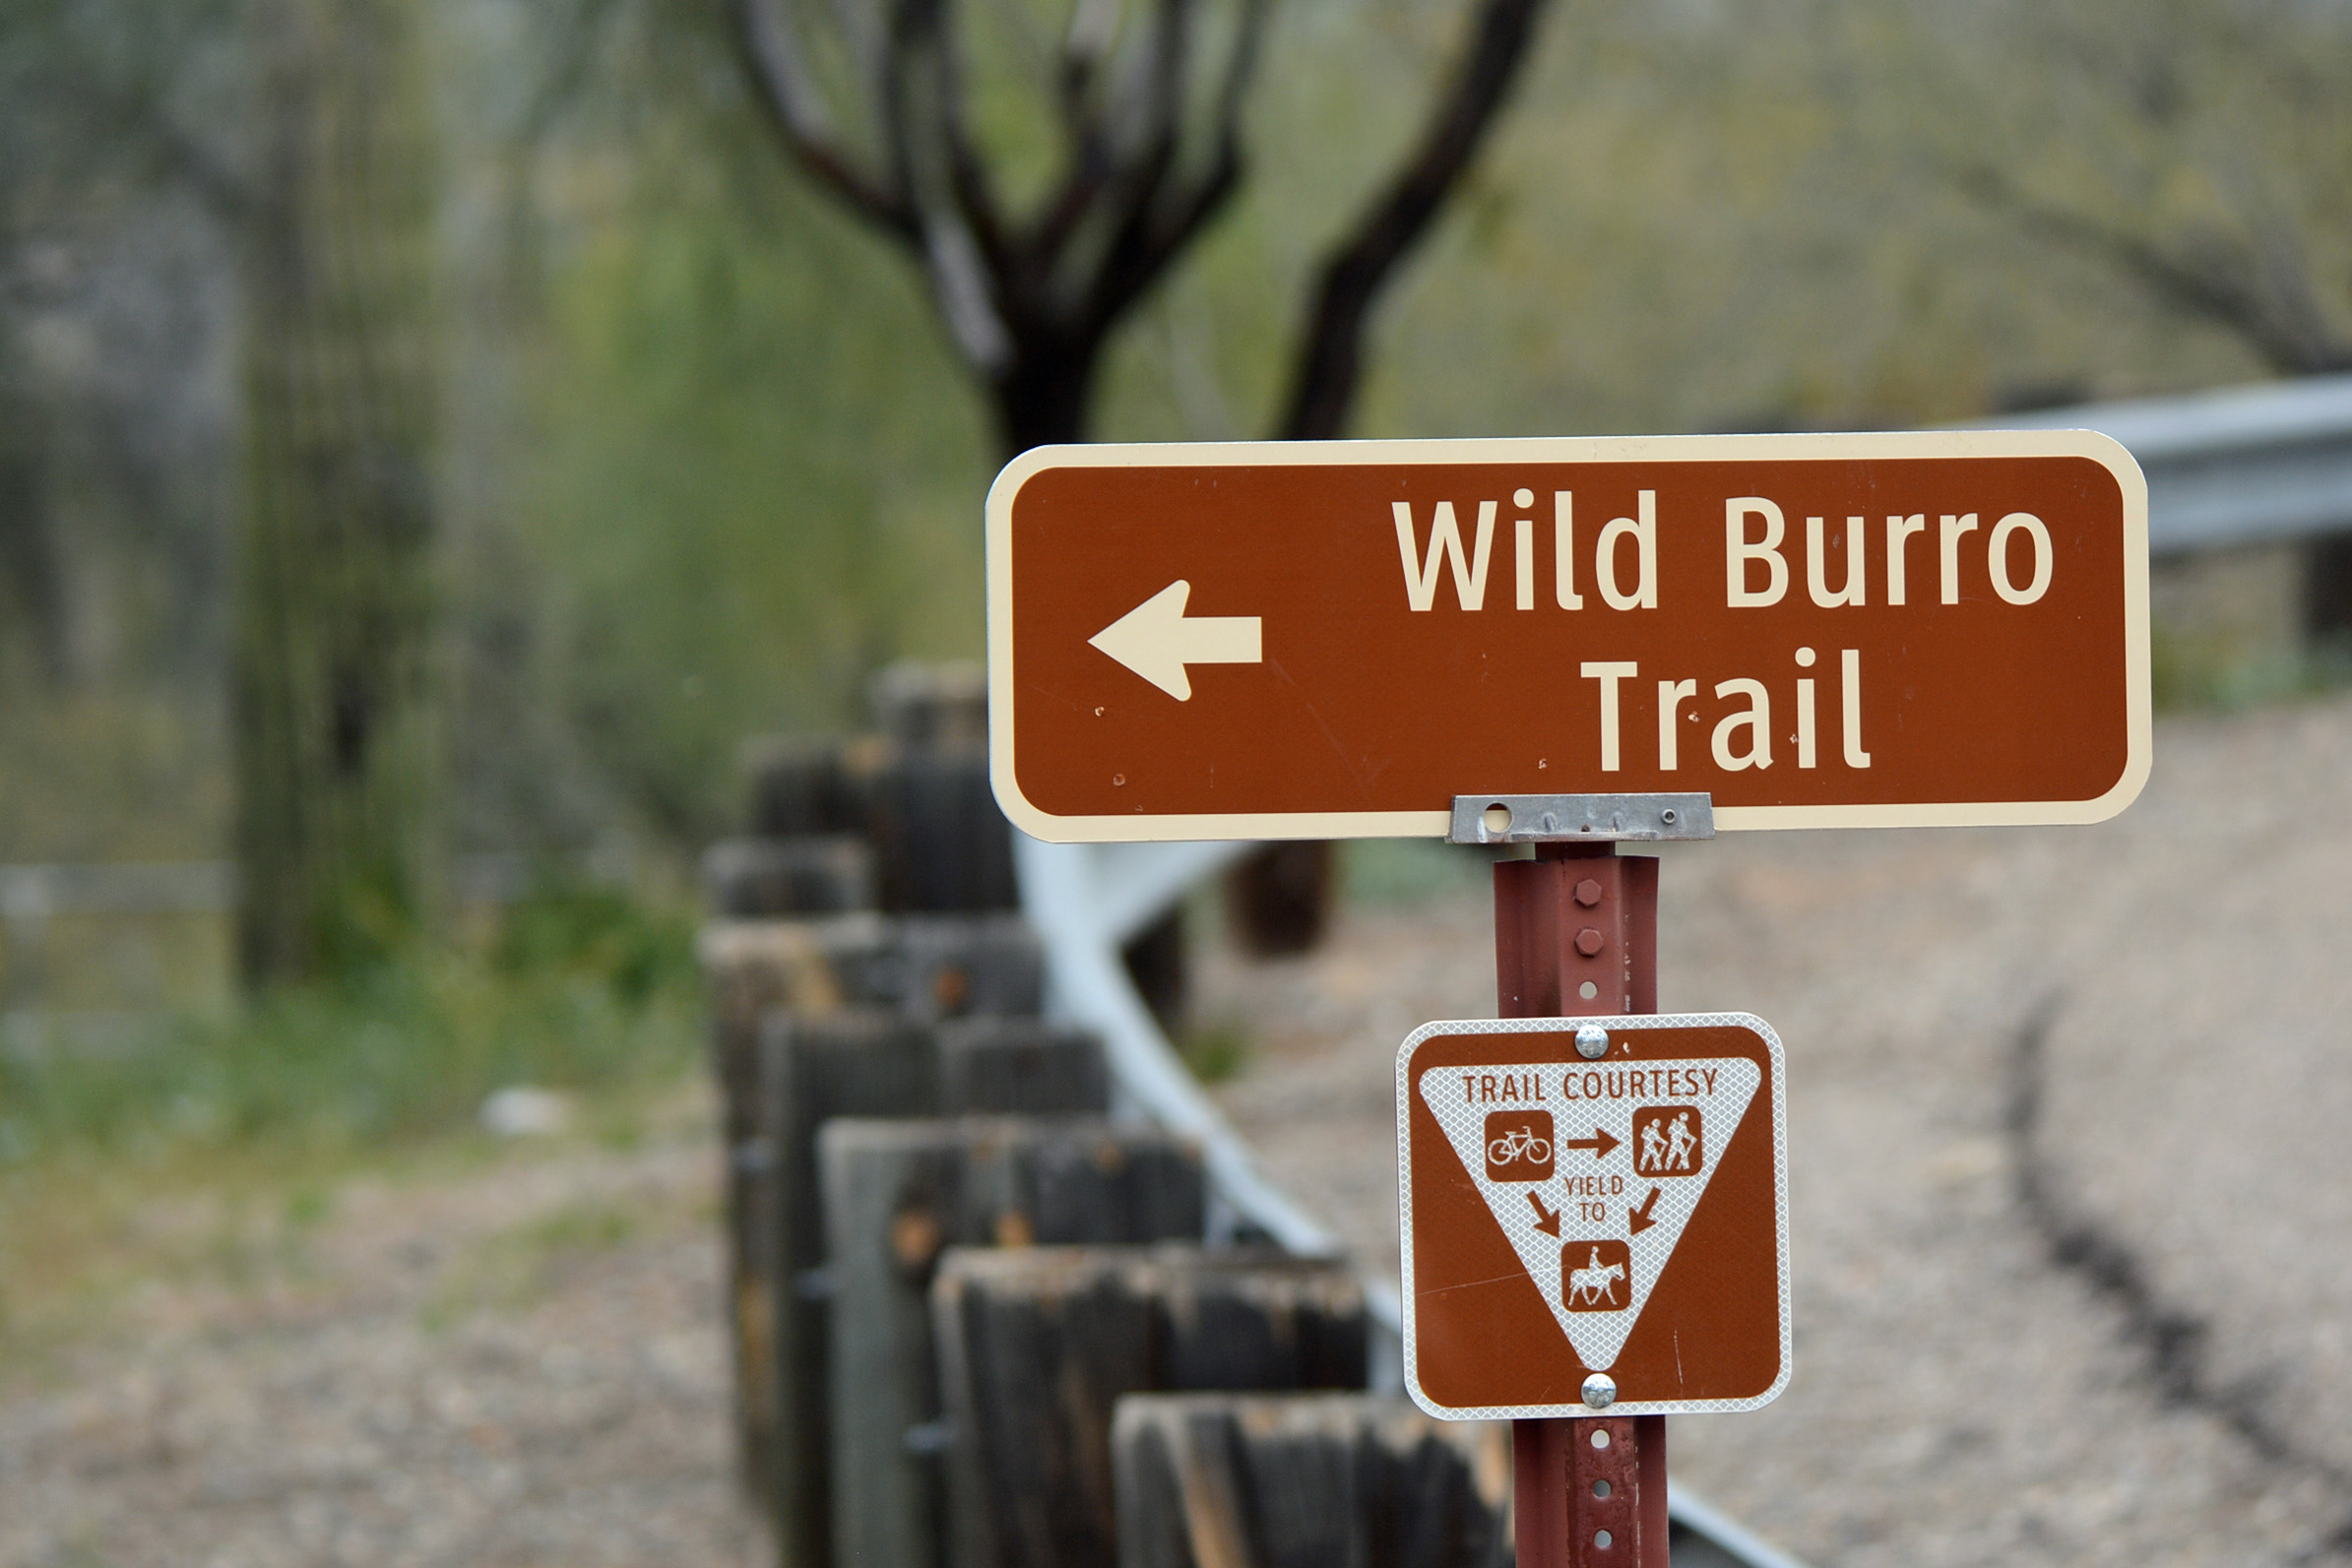 WB Trail Sign